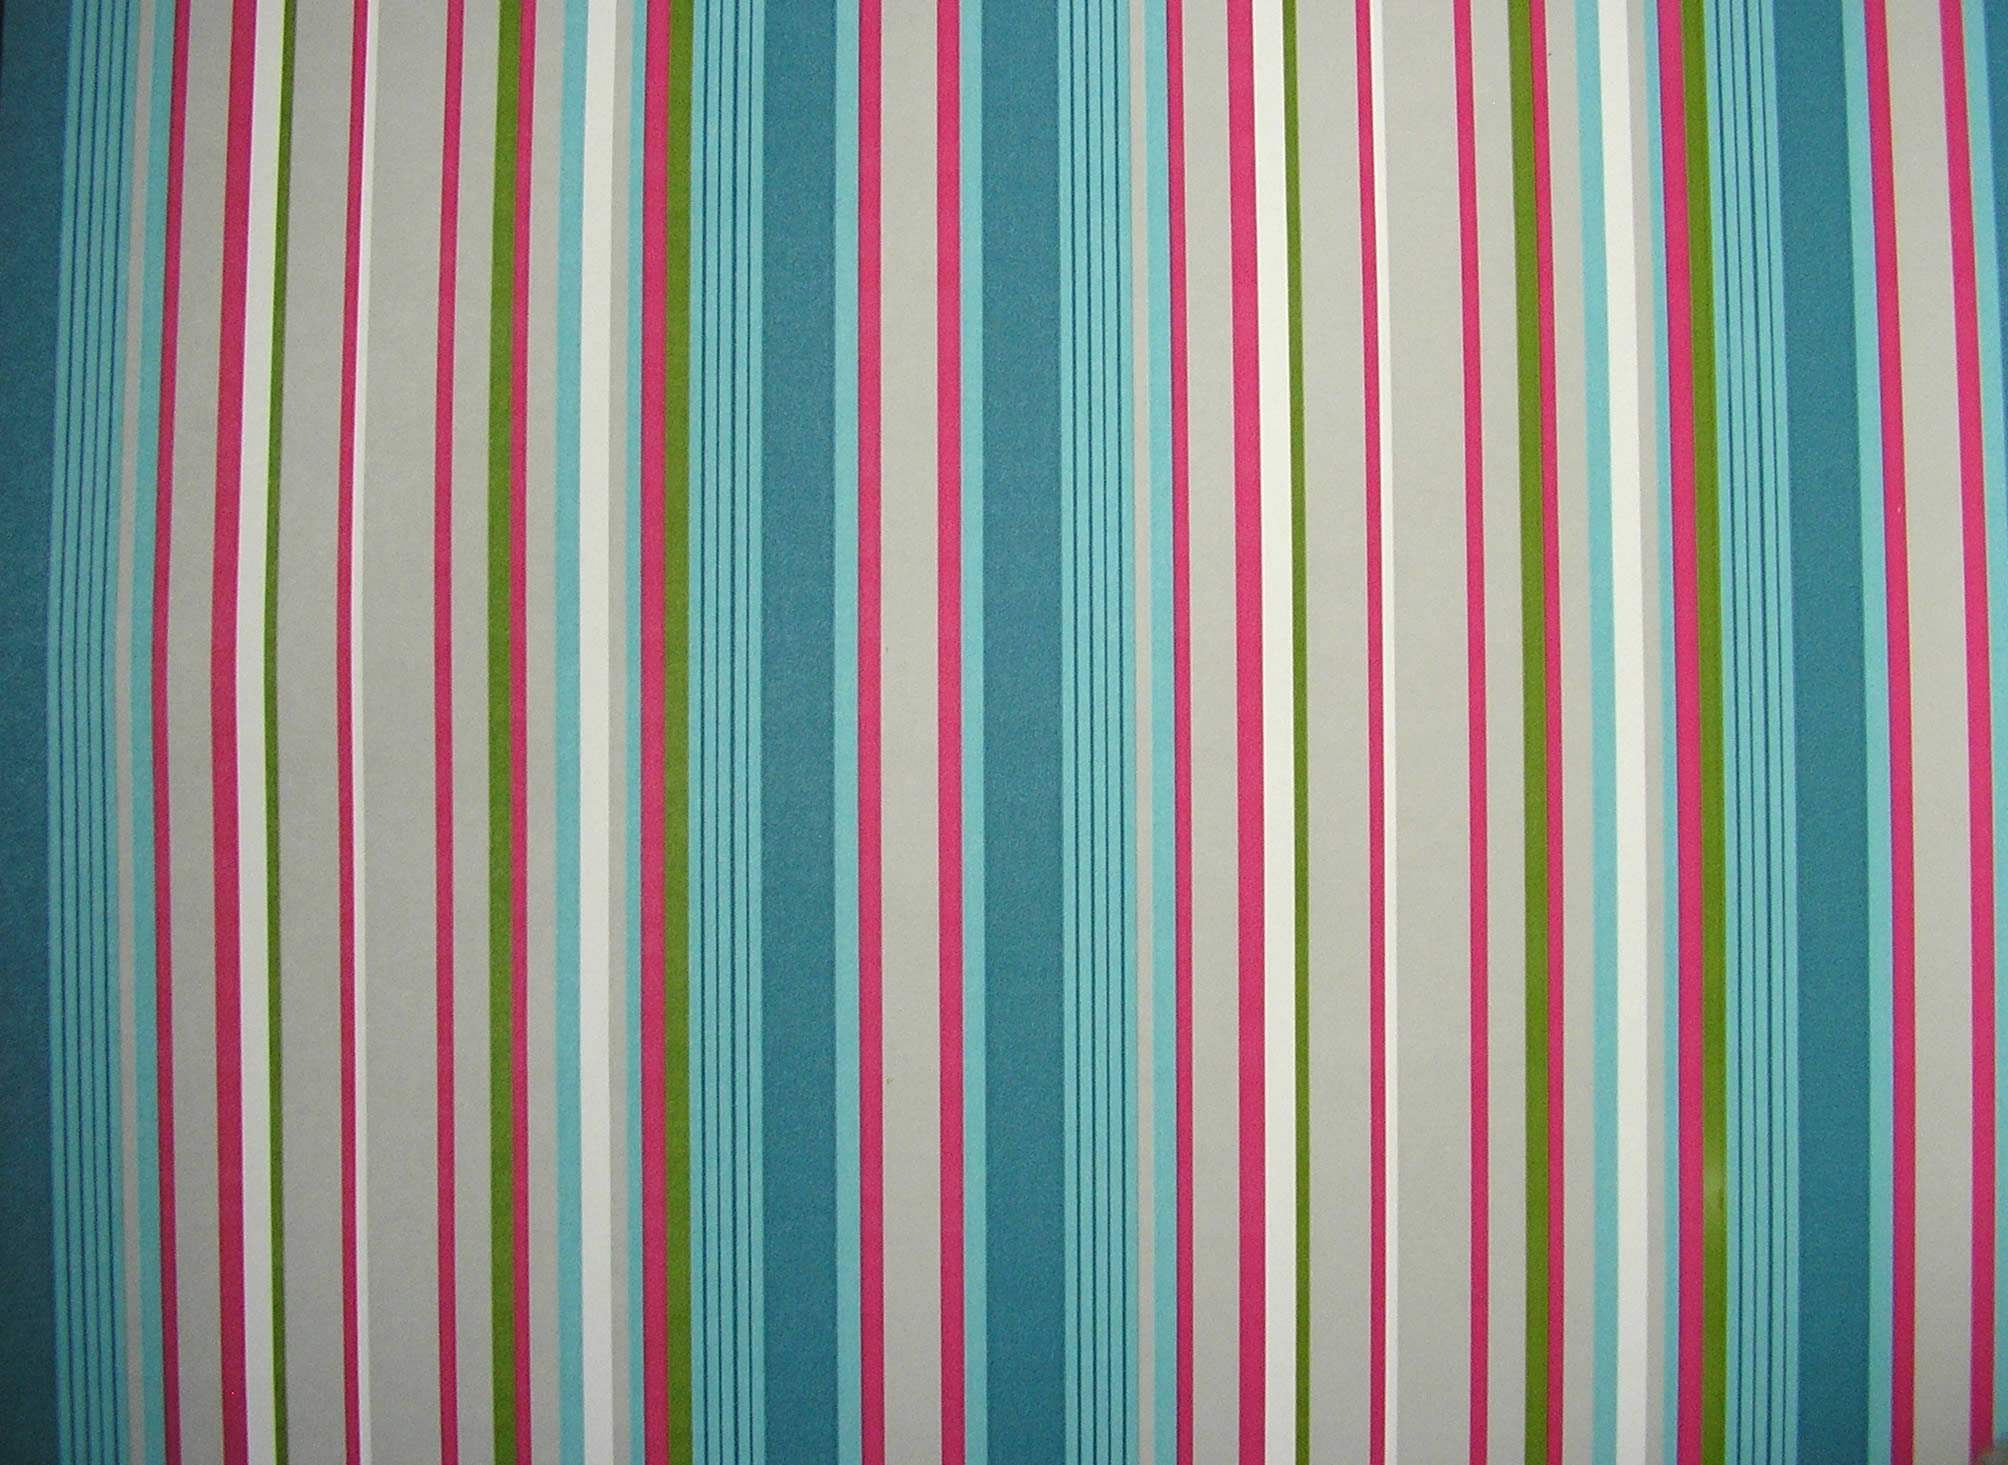 Petrol Blue Striped Wallpaper